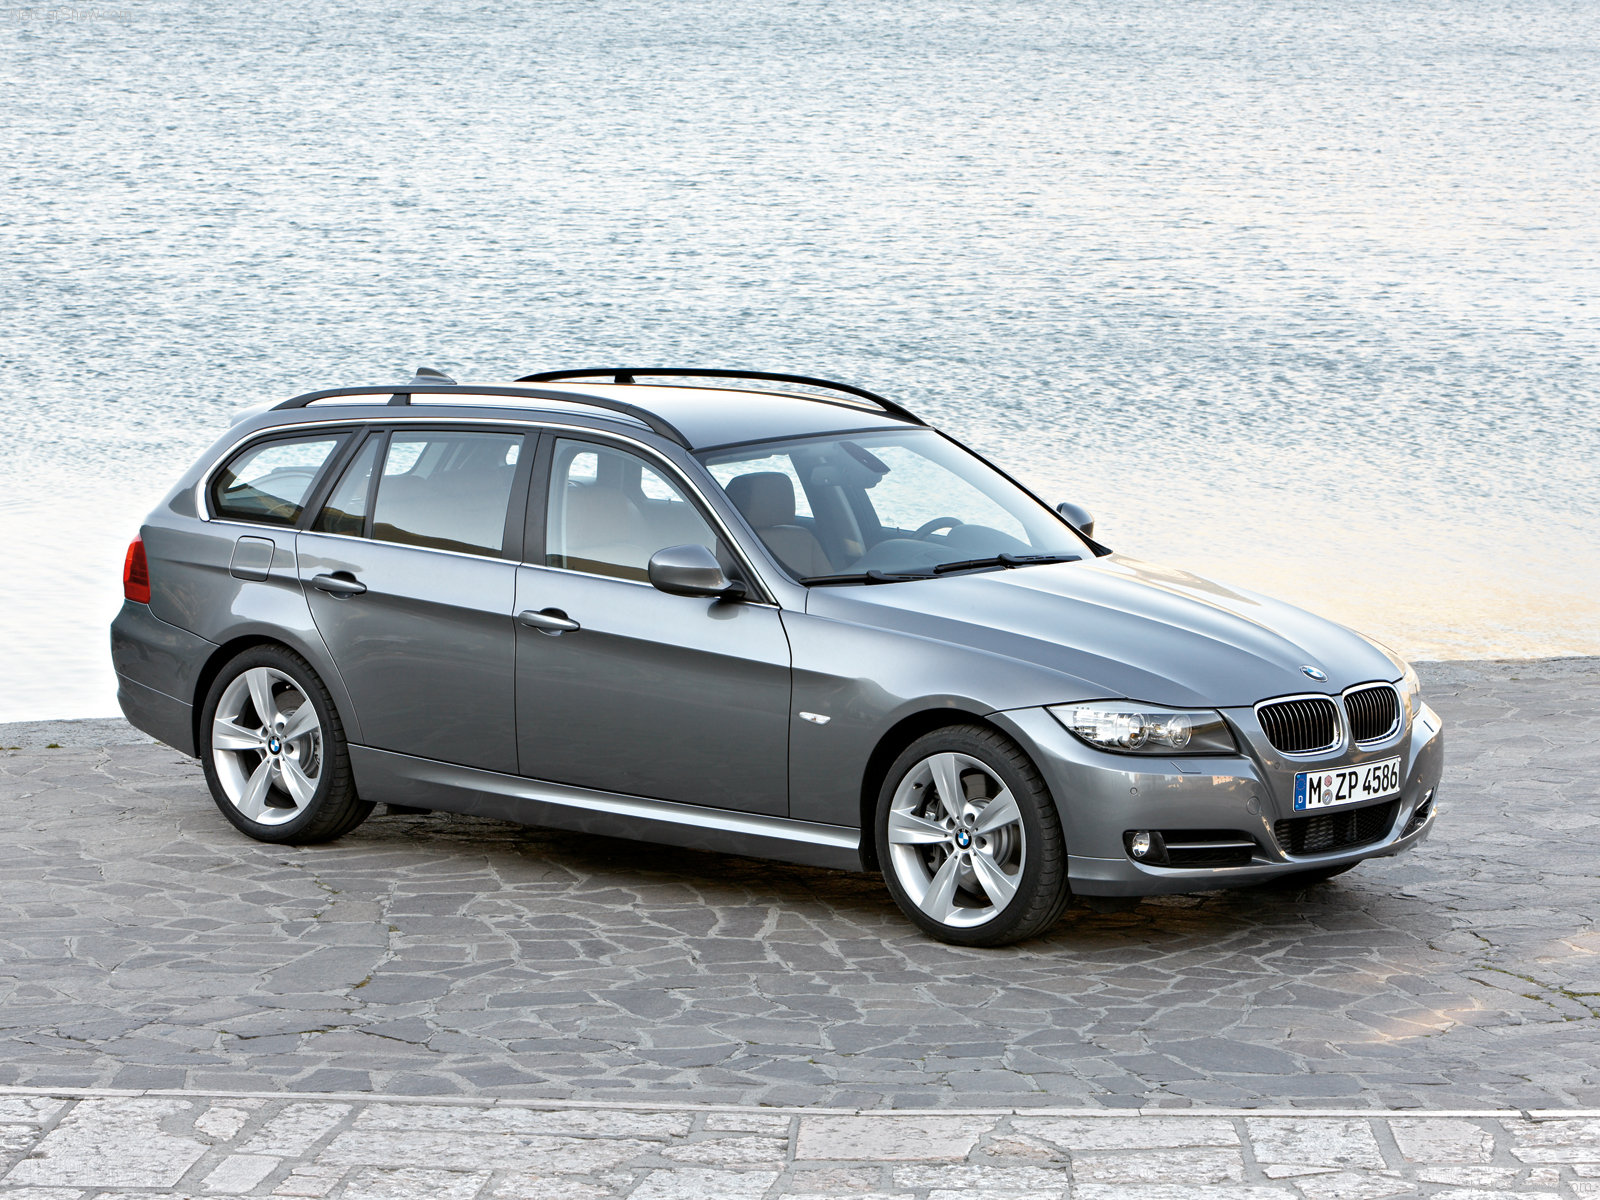 bmw 3 series e91 touring photos photo gallery page 4. Black Bedroom Furniture Sets. Home Design Ideas